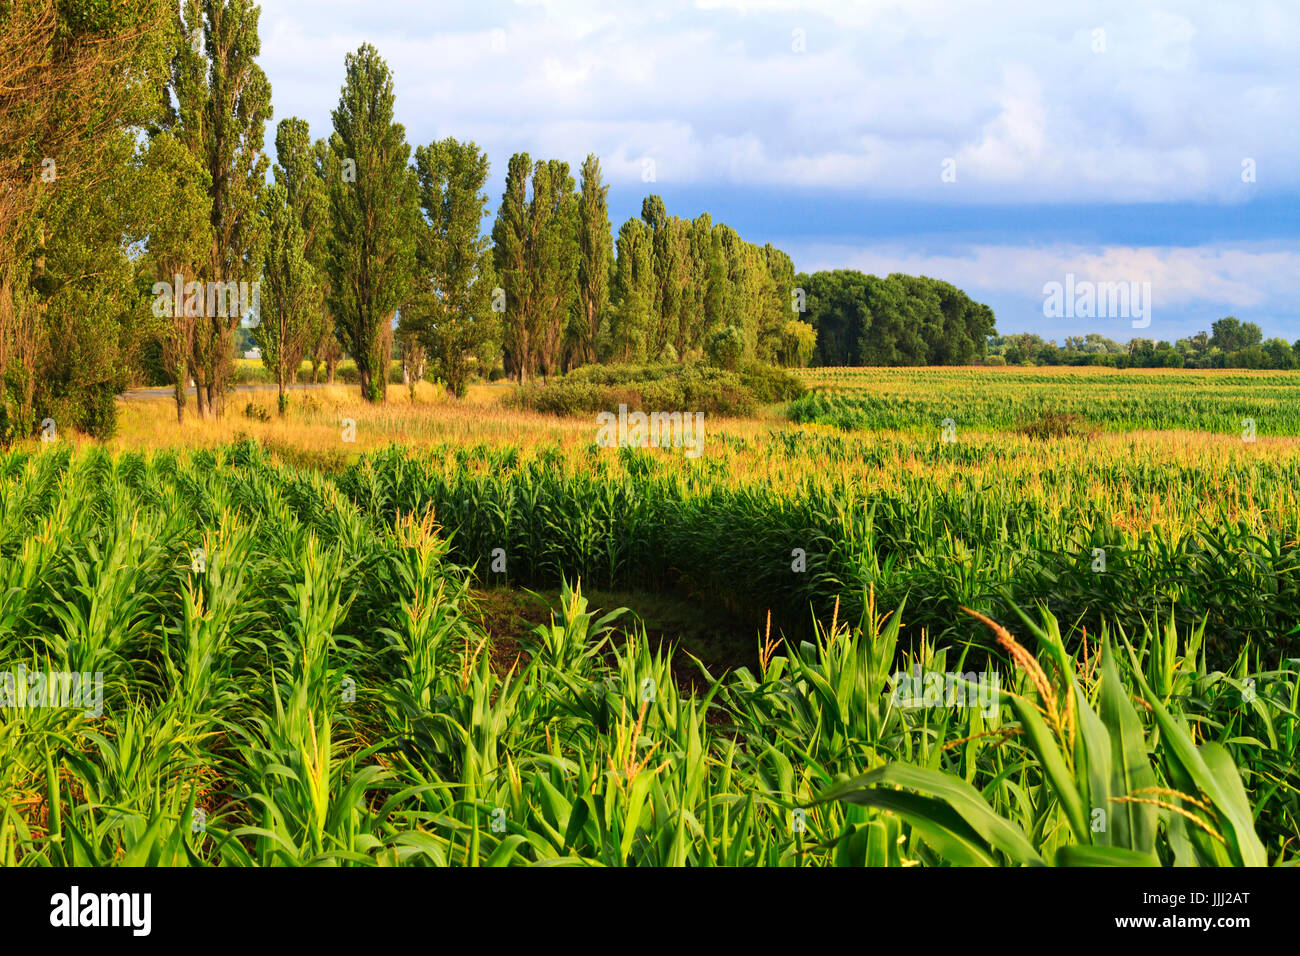 place where they grow ecologically pure corn,Agrocultura - Stock Image